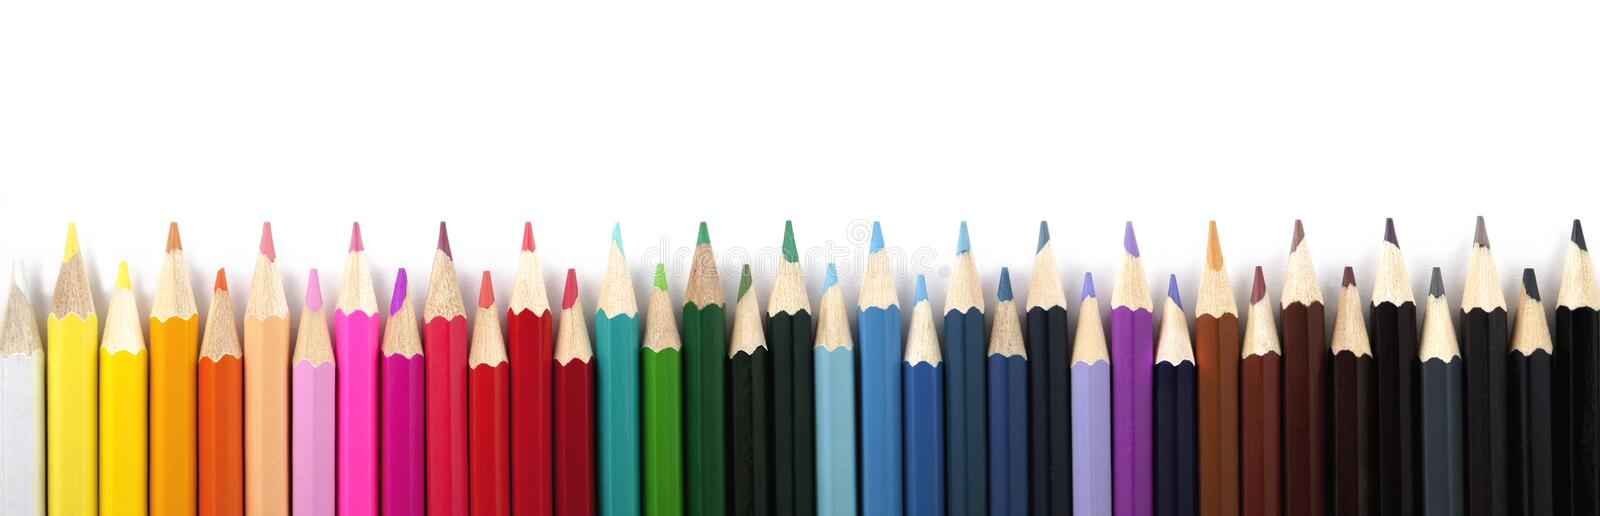 Colored pencils on a white background. Panorama. royalty free stock photos